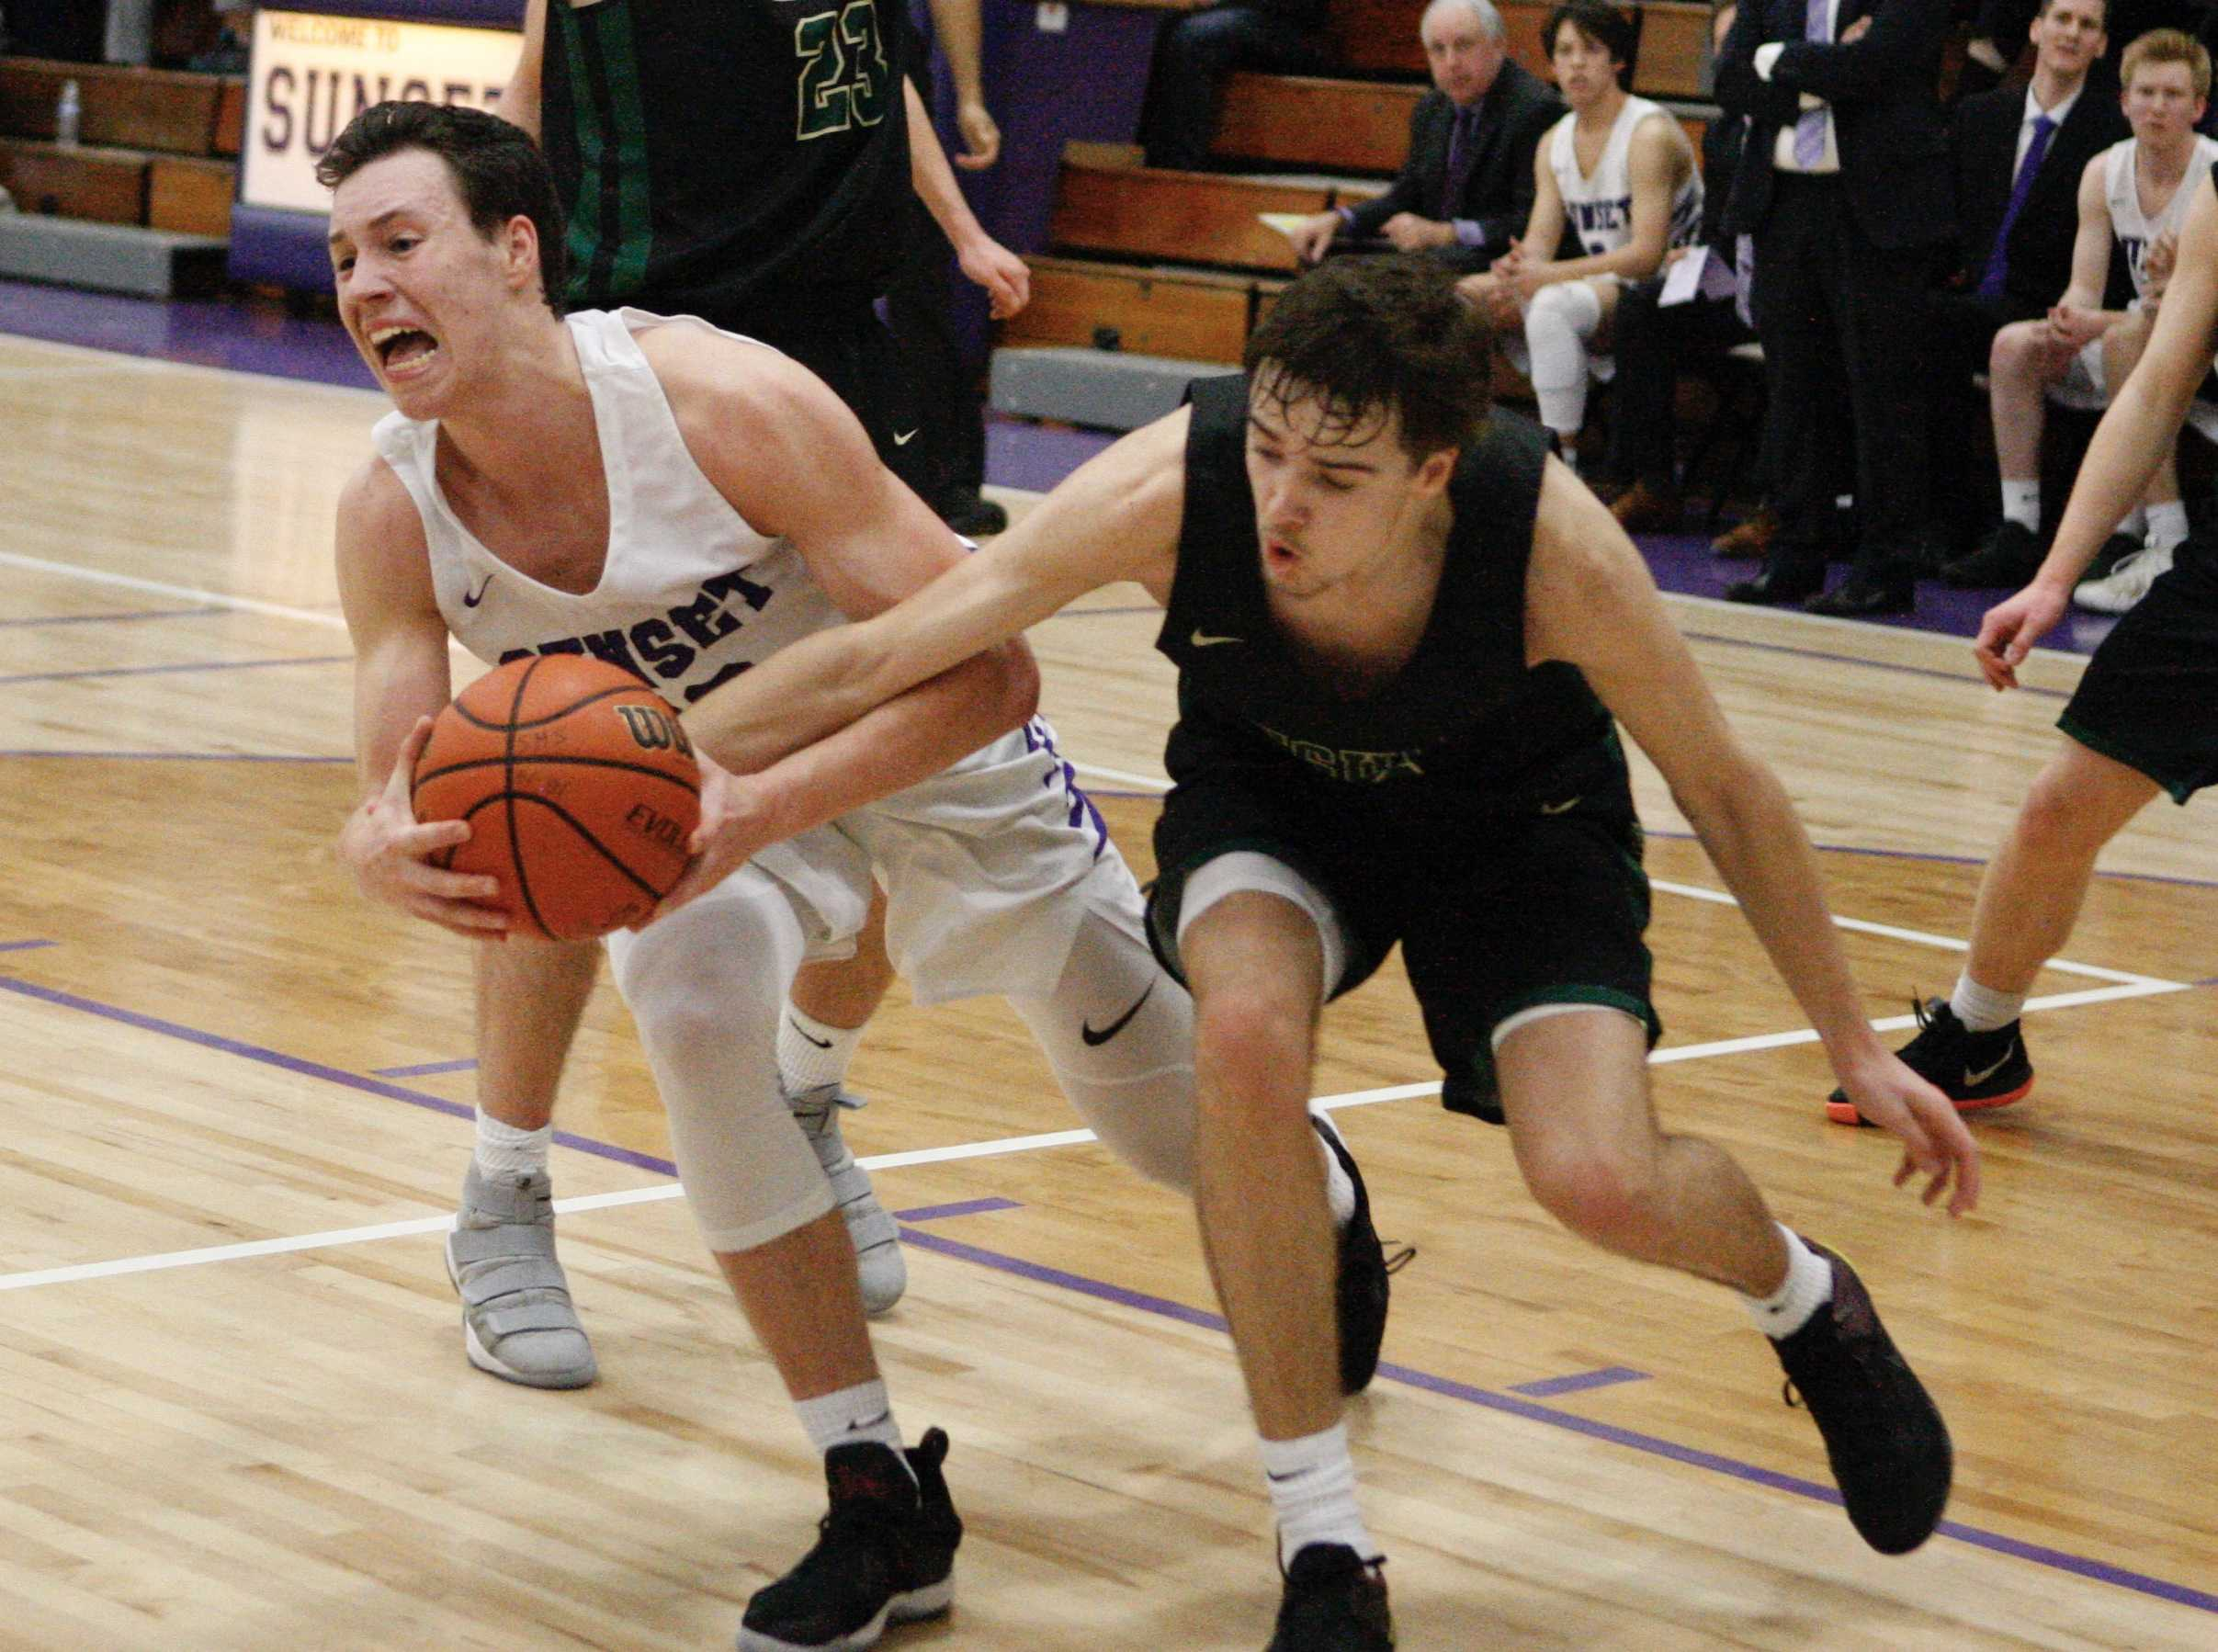 Sunset's Colby King wrestles the ball away from Jesuit's Justin Bieker in the third quarter of Apollos' 89-84 victory.